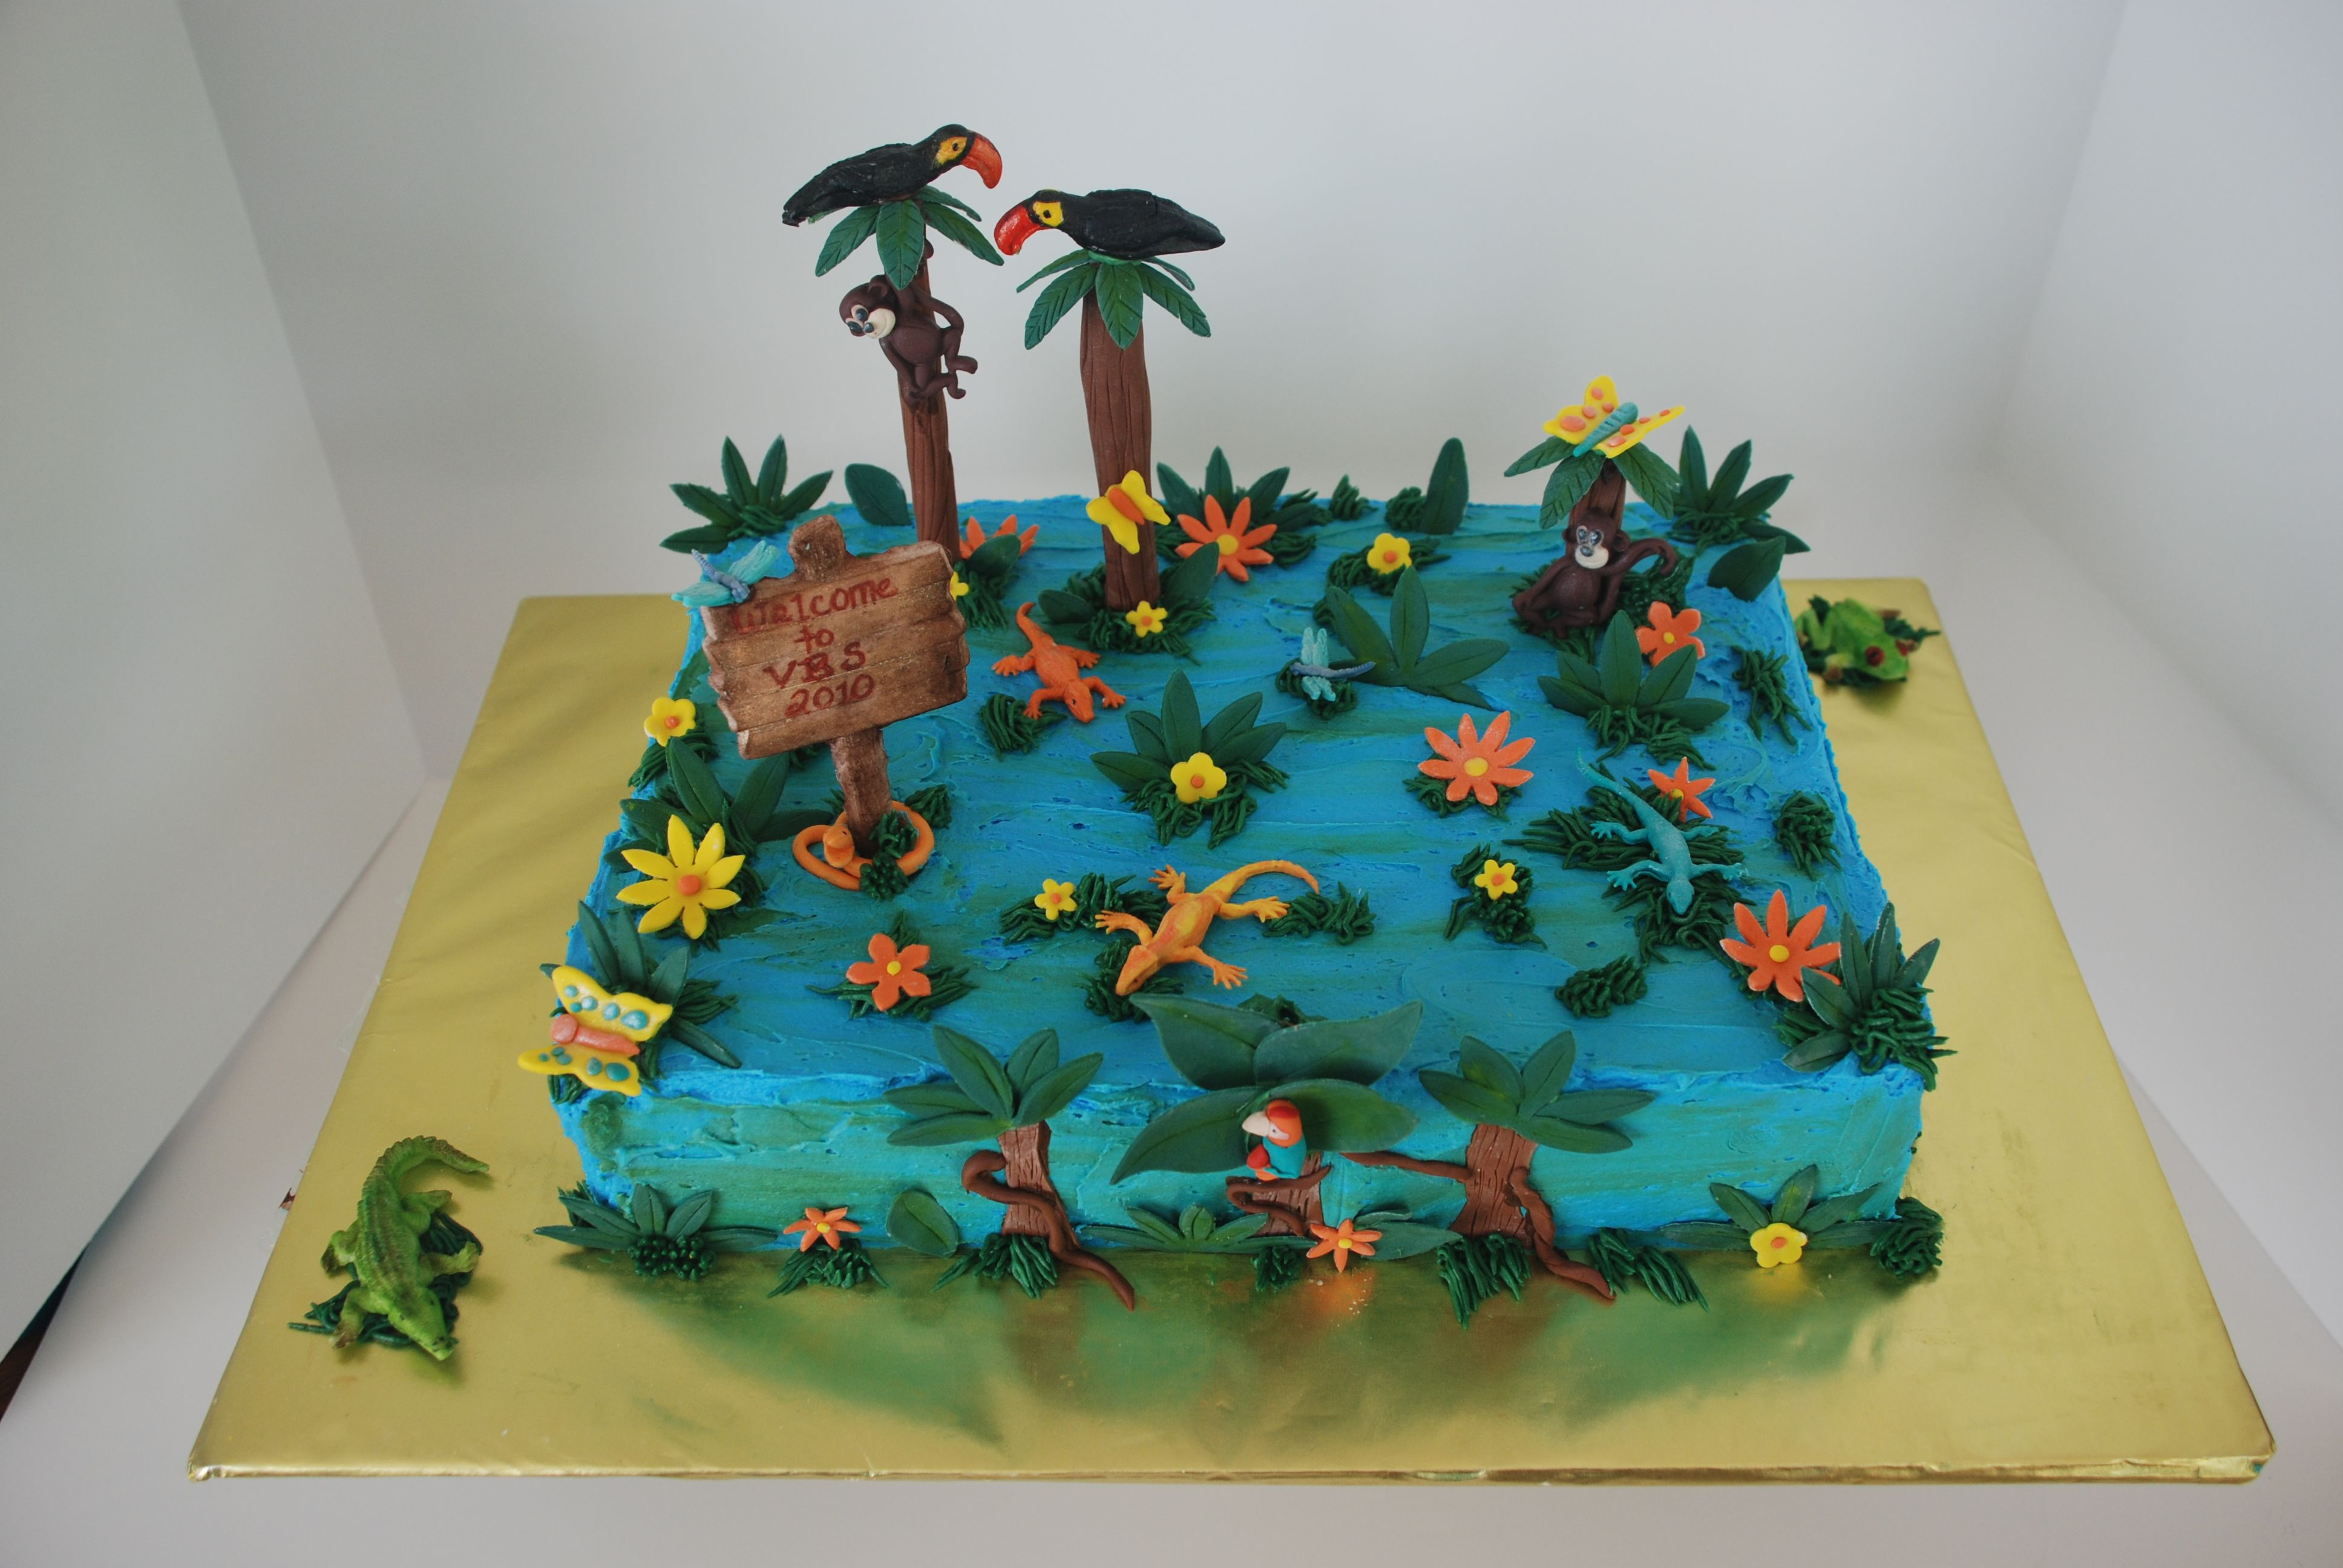 Rainforest Cake With Lizards Monkeys Toucans And An